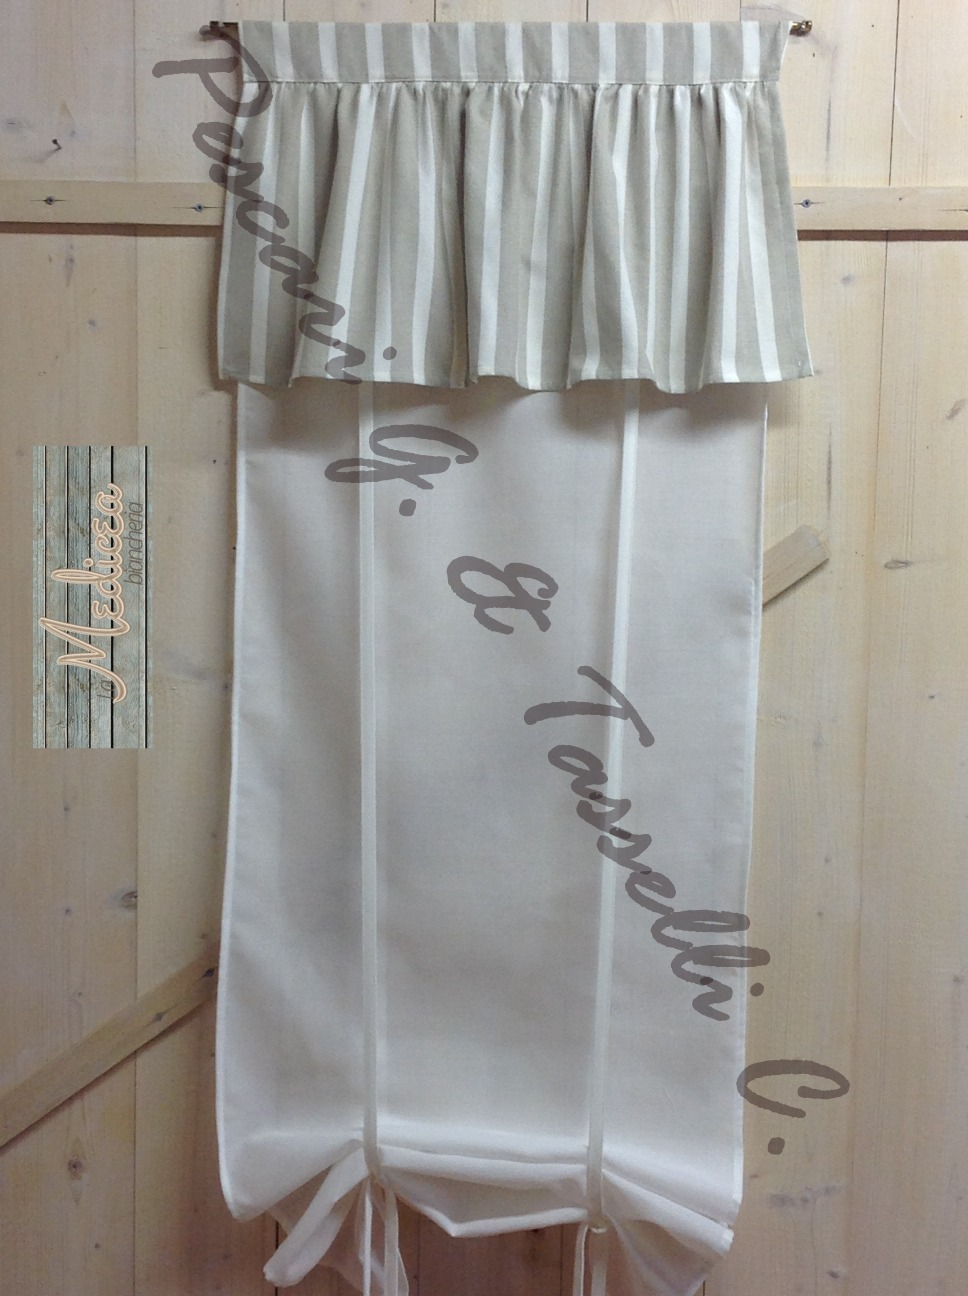 Tenda cucina shabby chic sandy made in tuscany 50x150 - Tende shabby cucina ...